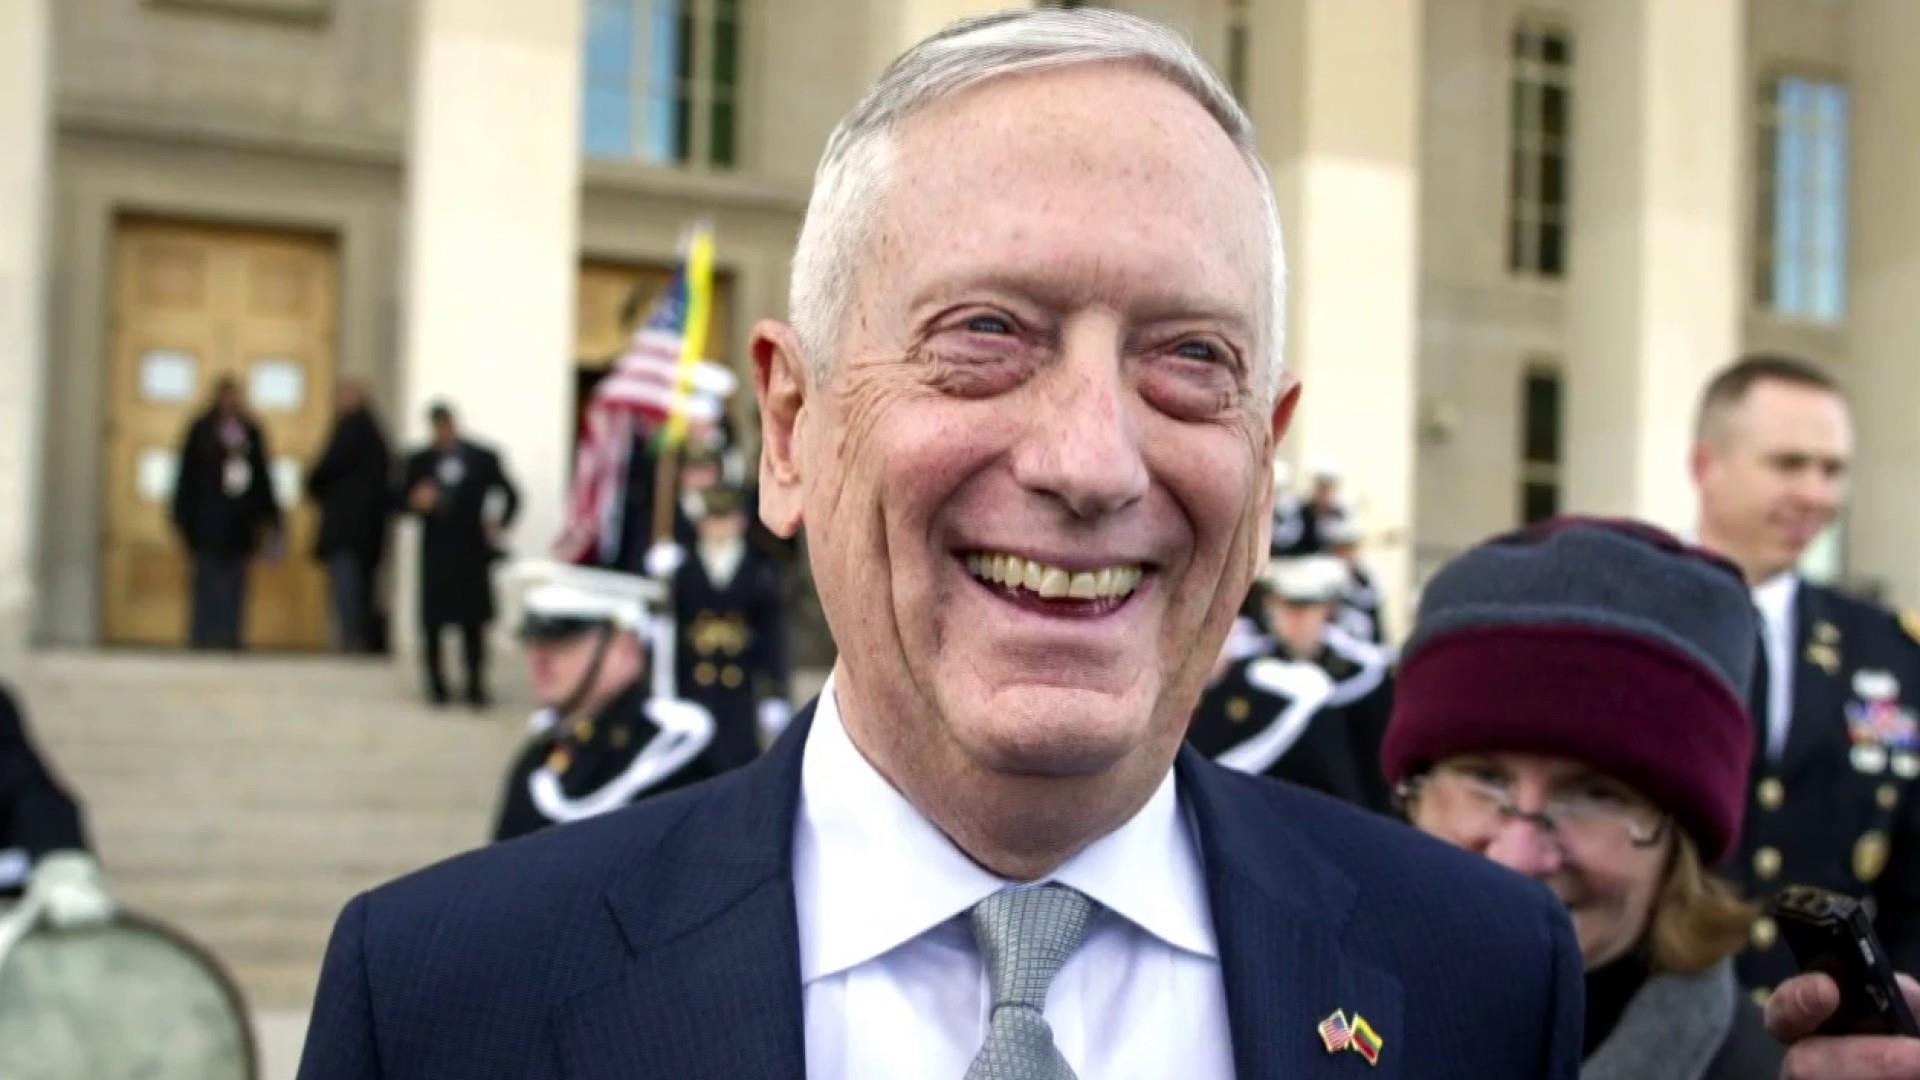 What does Mattis' resignation mean for national security?